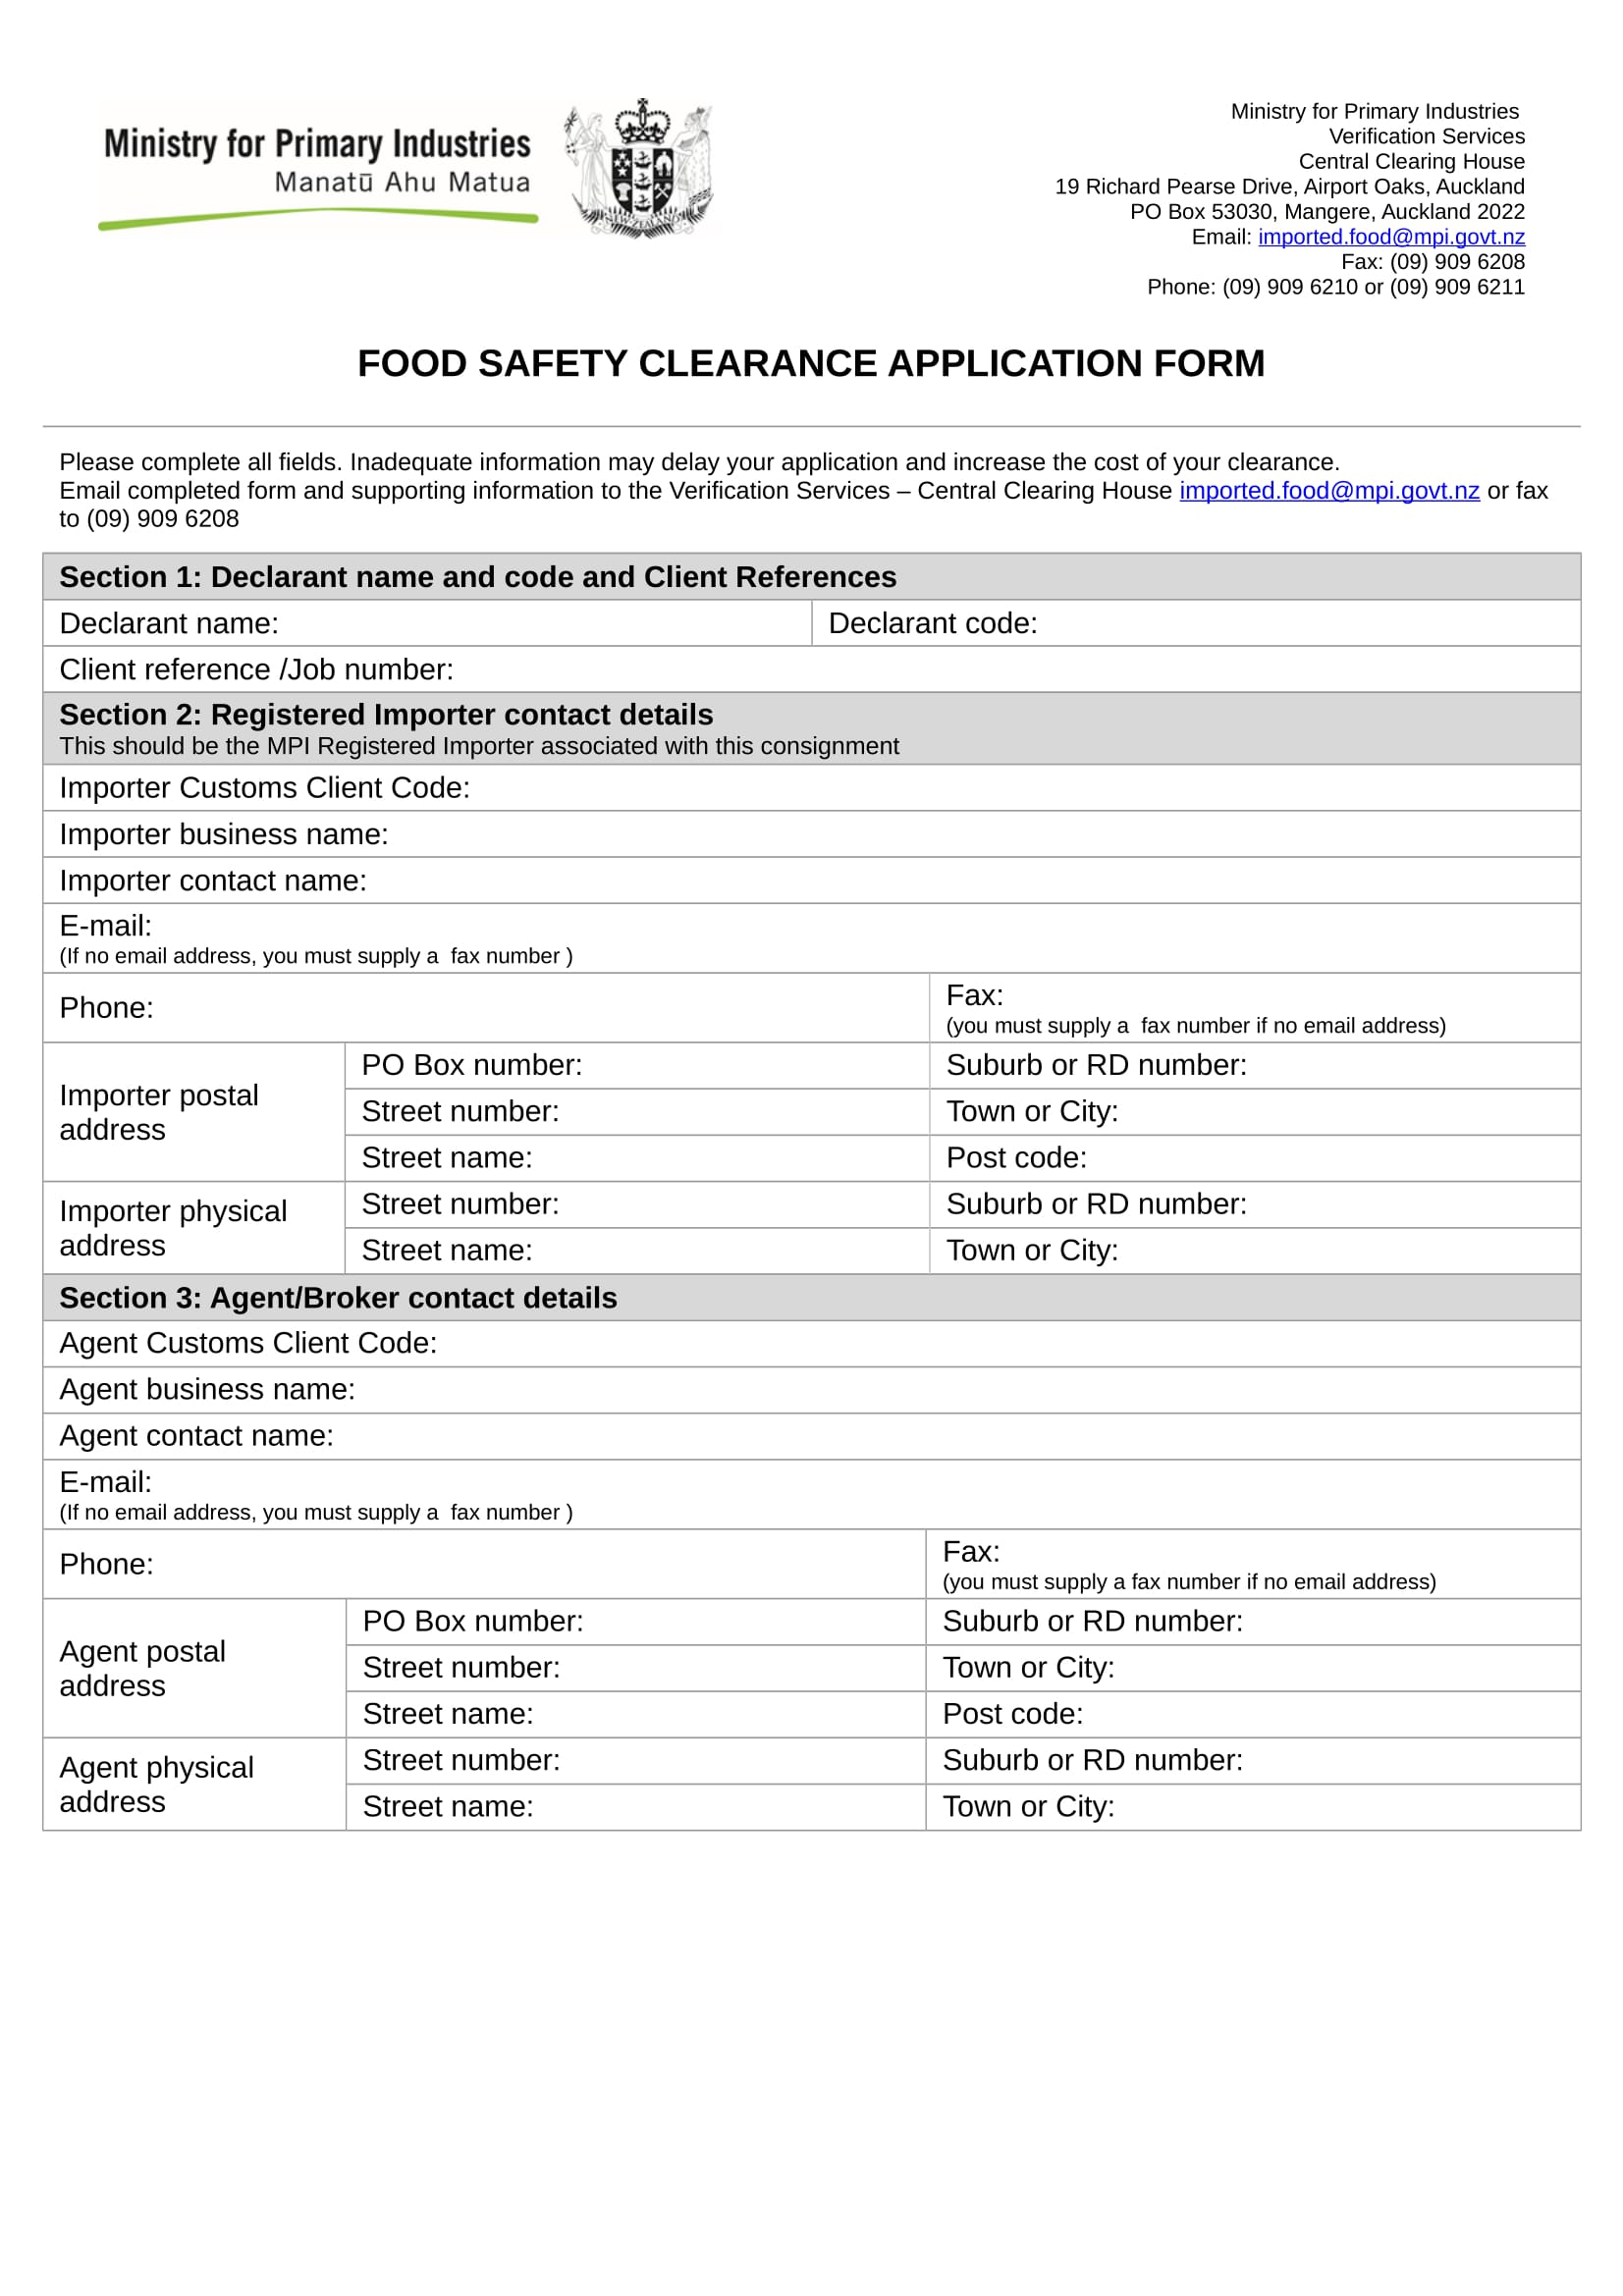 food safety clearance application form 1